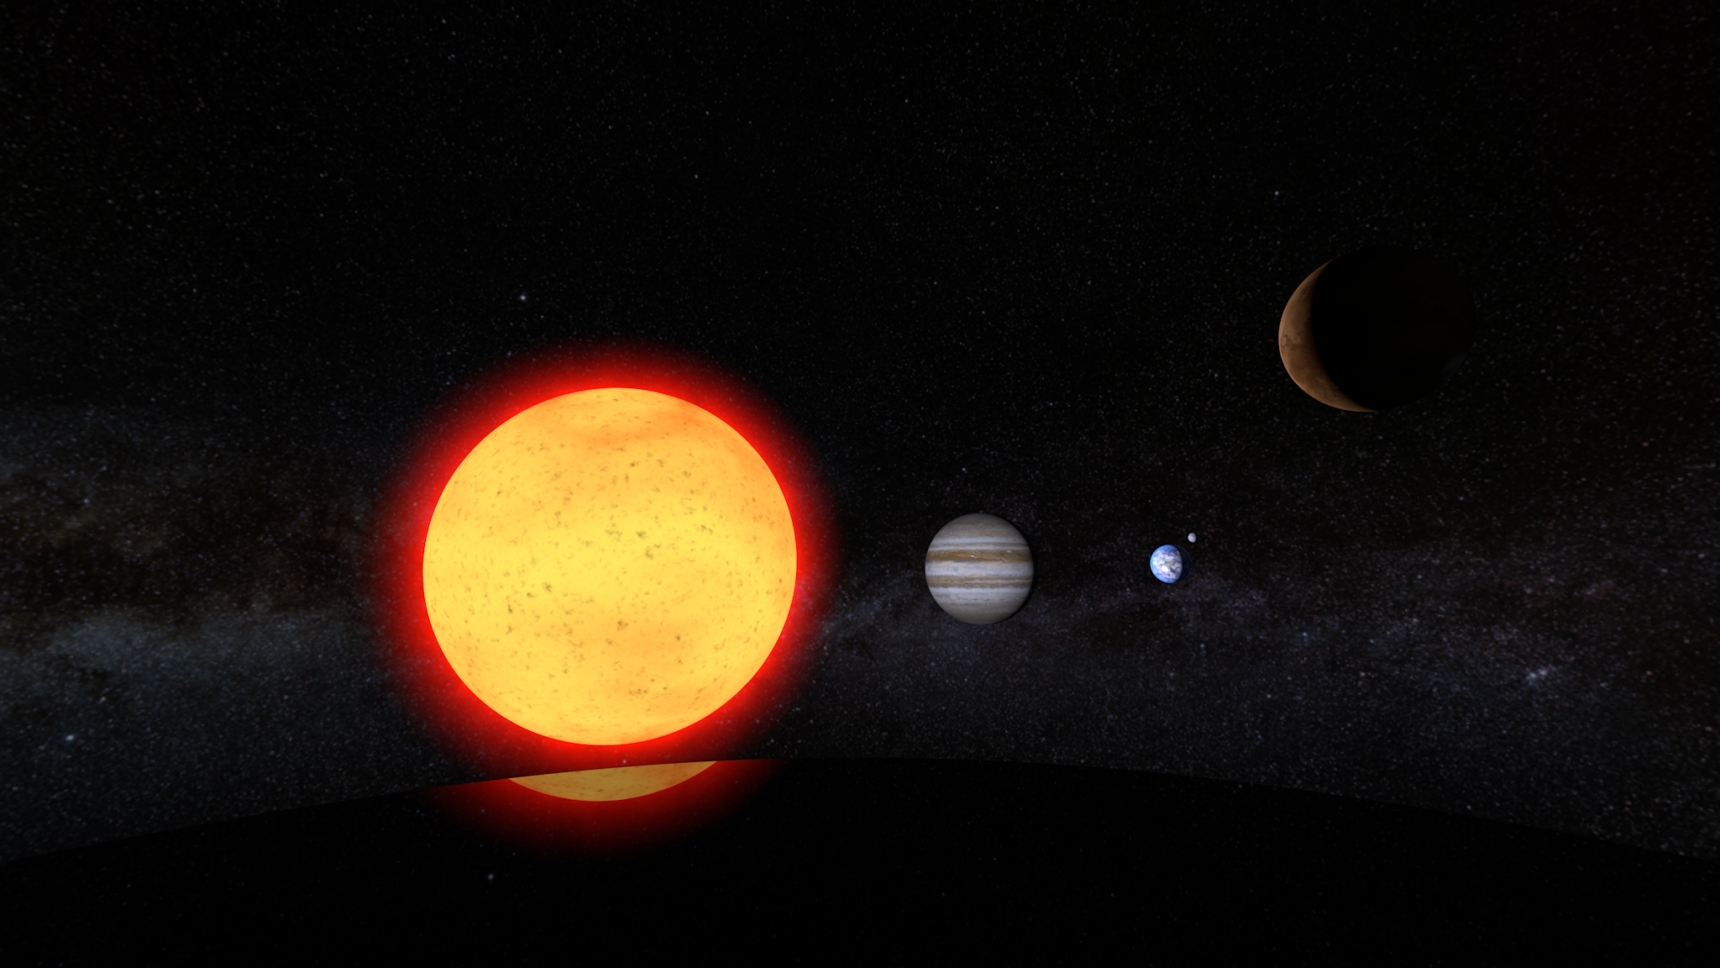 Video: This virtual-reality tour shows how the sun, Earth and the other planets came to be.